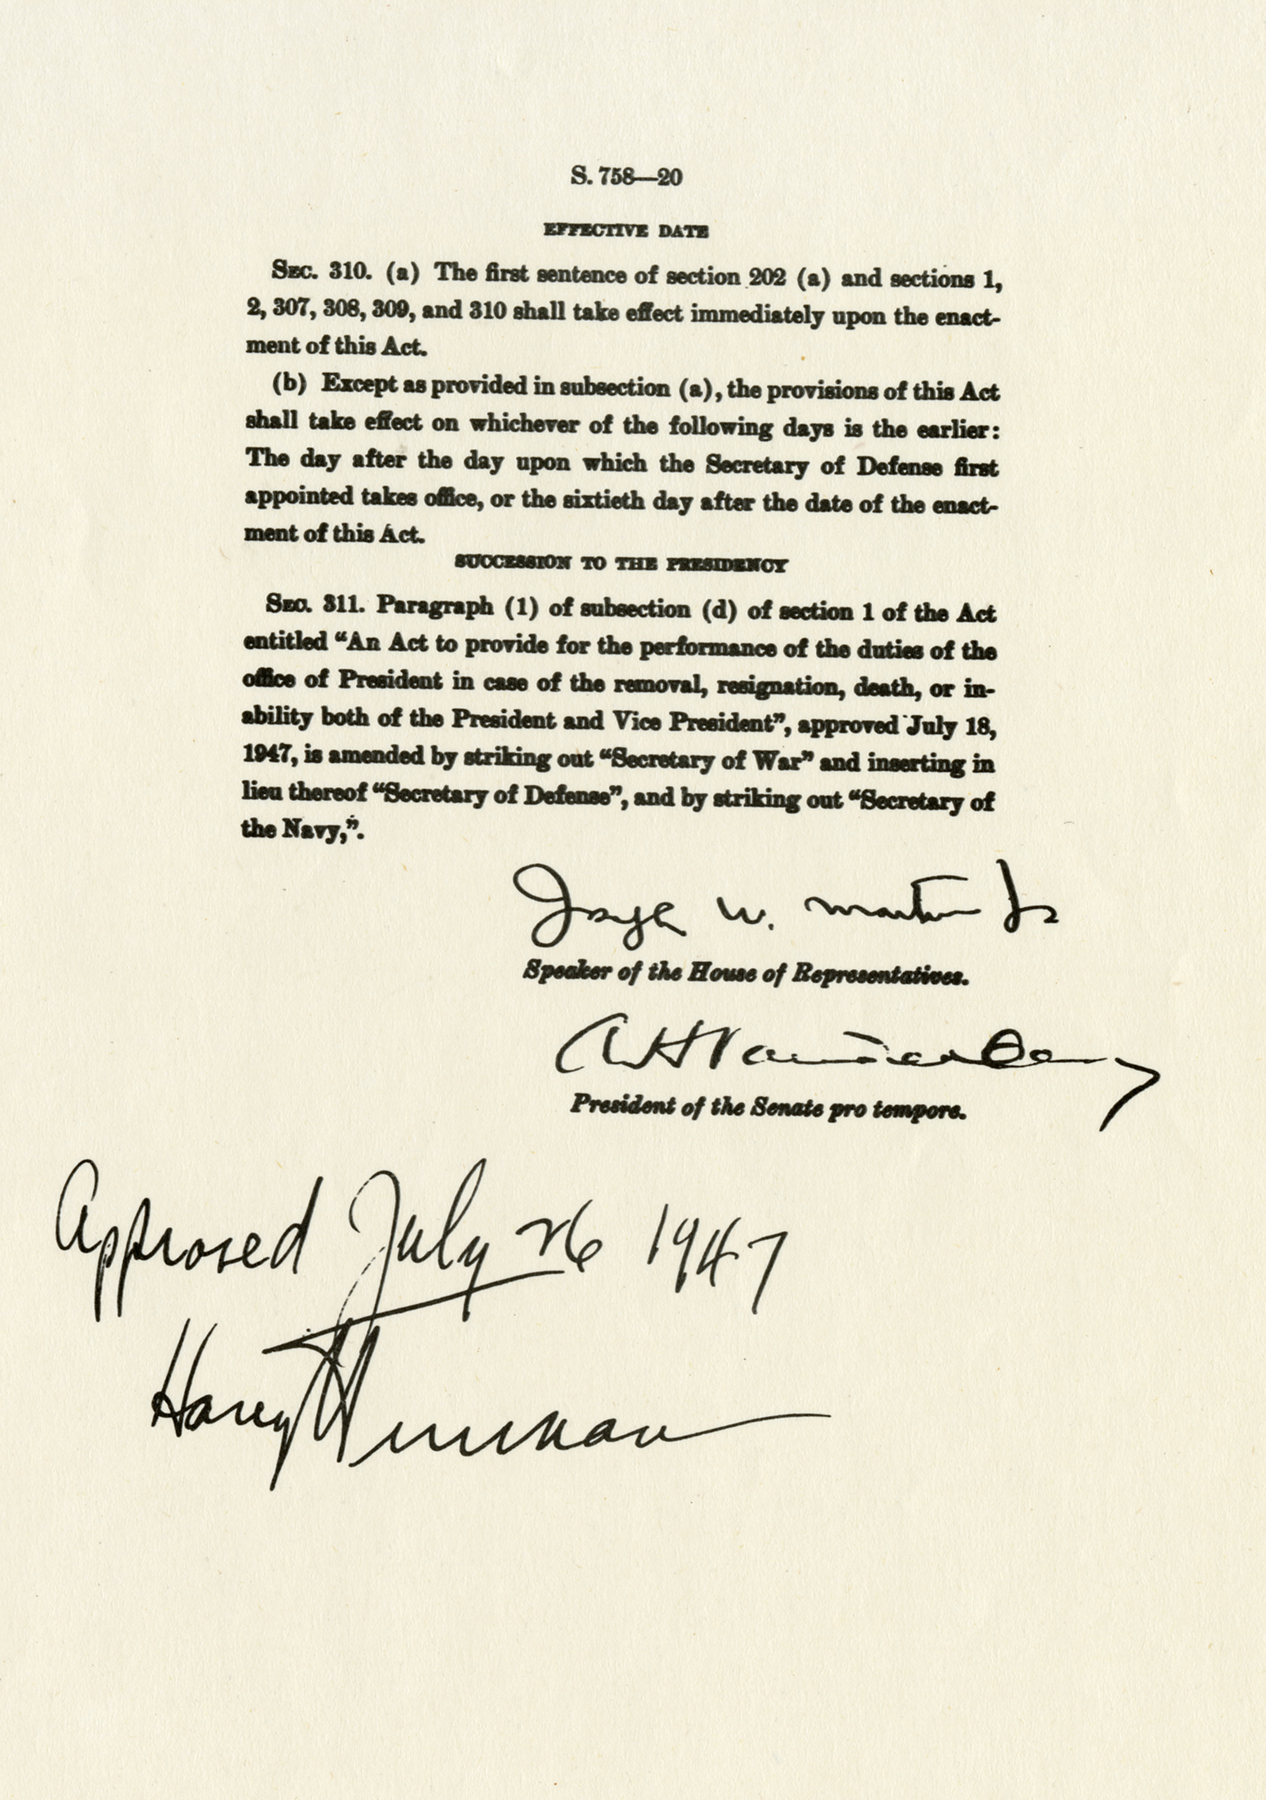 national security act National security act, us military- and foreign-policy reform legislation, signed  into law by pres harry s truman in july 1947, which reorganized the structure.